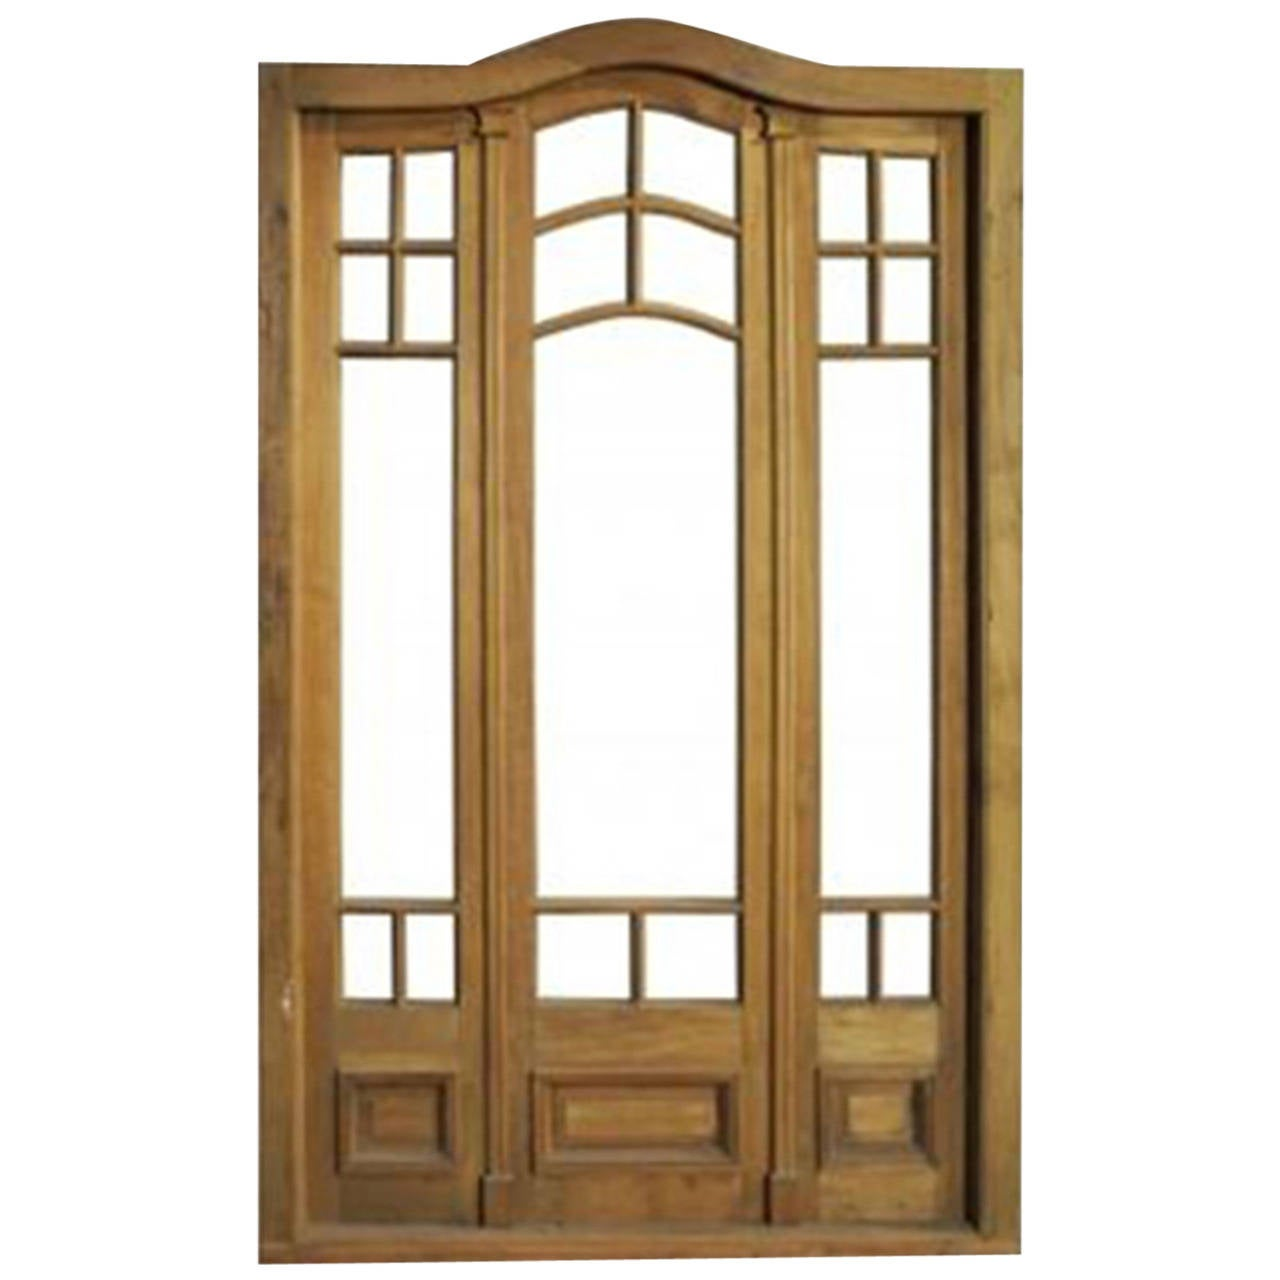 Antique triple french patio door at 1stdibs for Triple french doors exterior